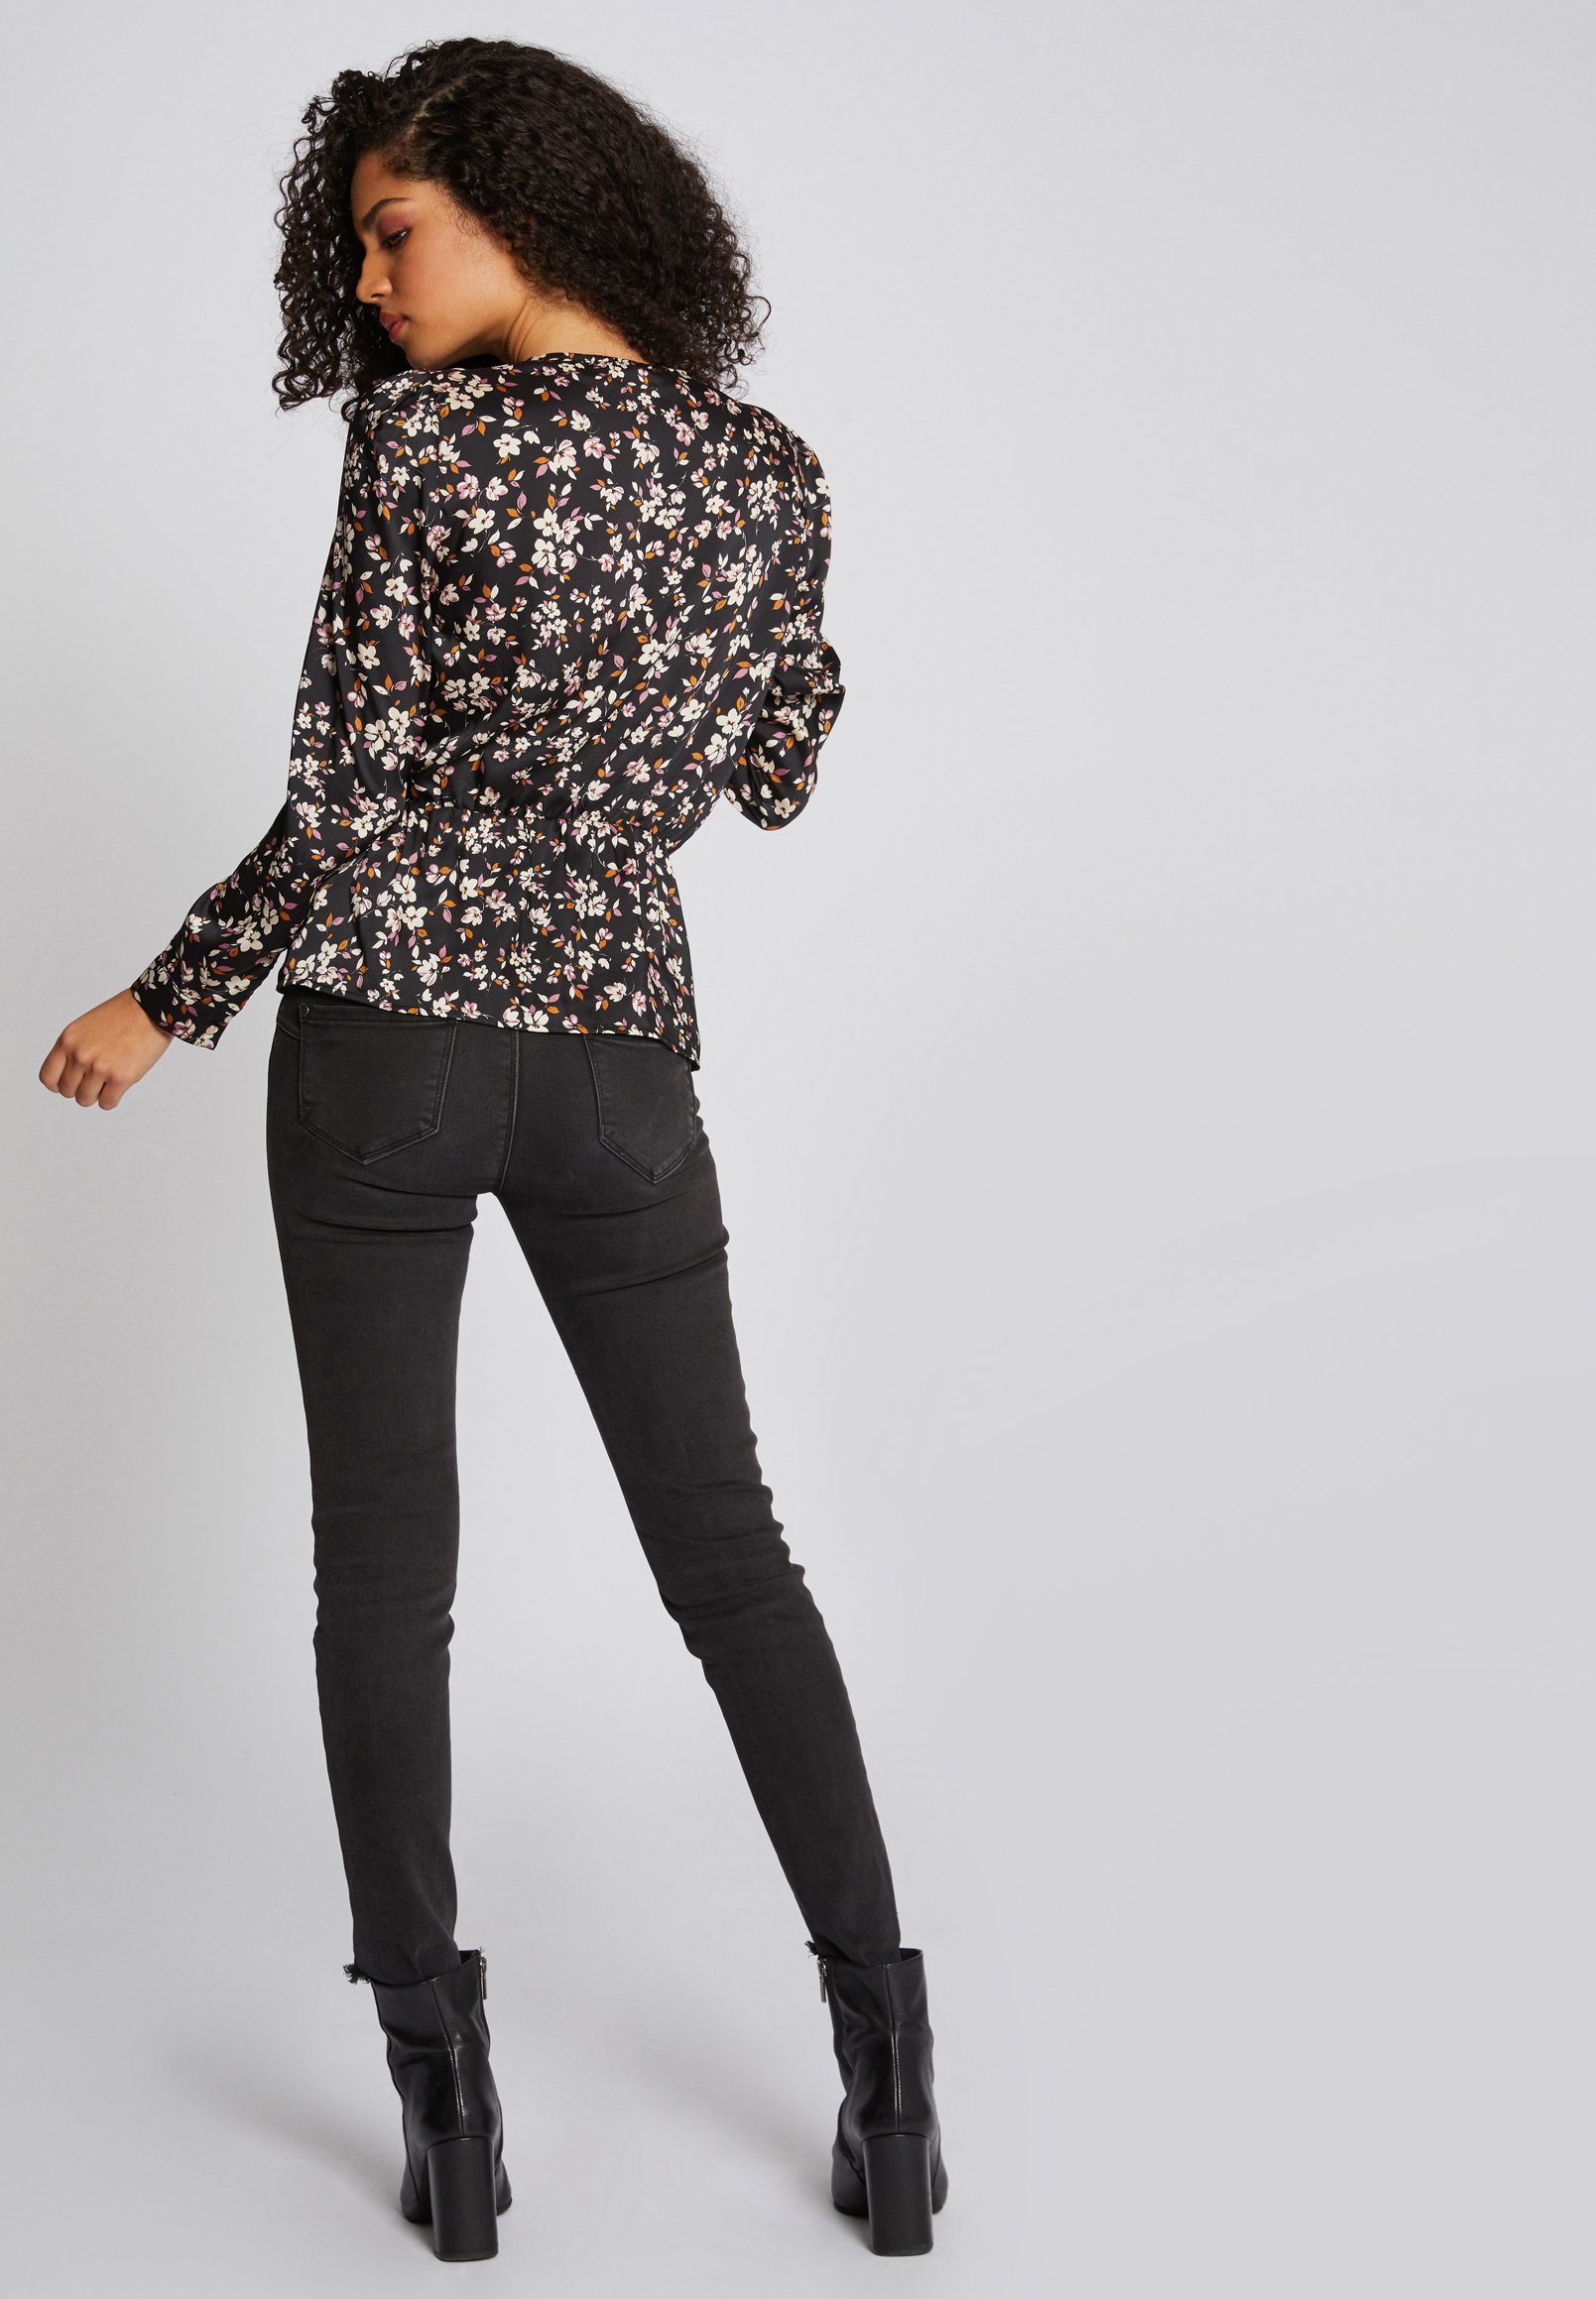 Morgan WITH FLORAL PRINT - Blouse - multi-coloured - Tops & T-shirts Femme O28W2